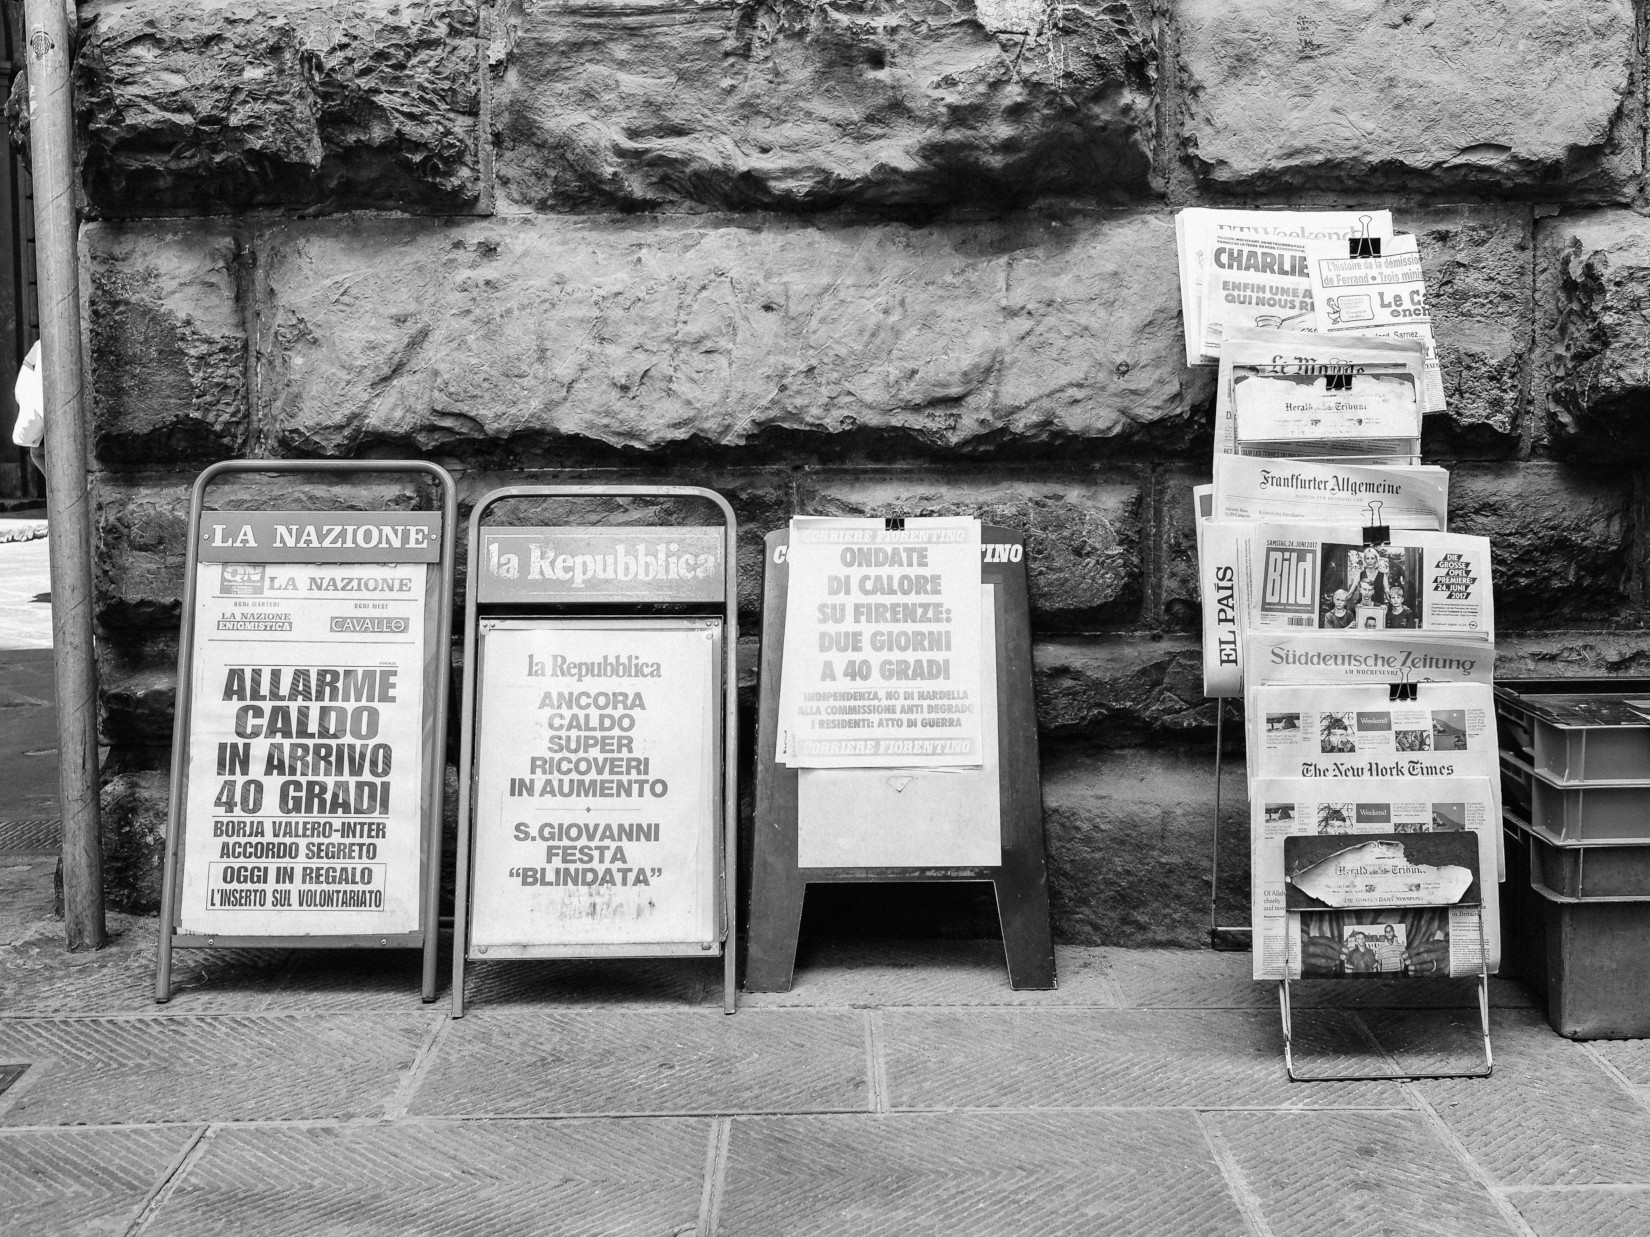 Greyscale image of newspapers on a stand.